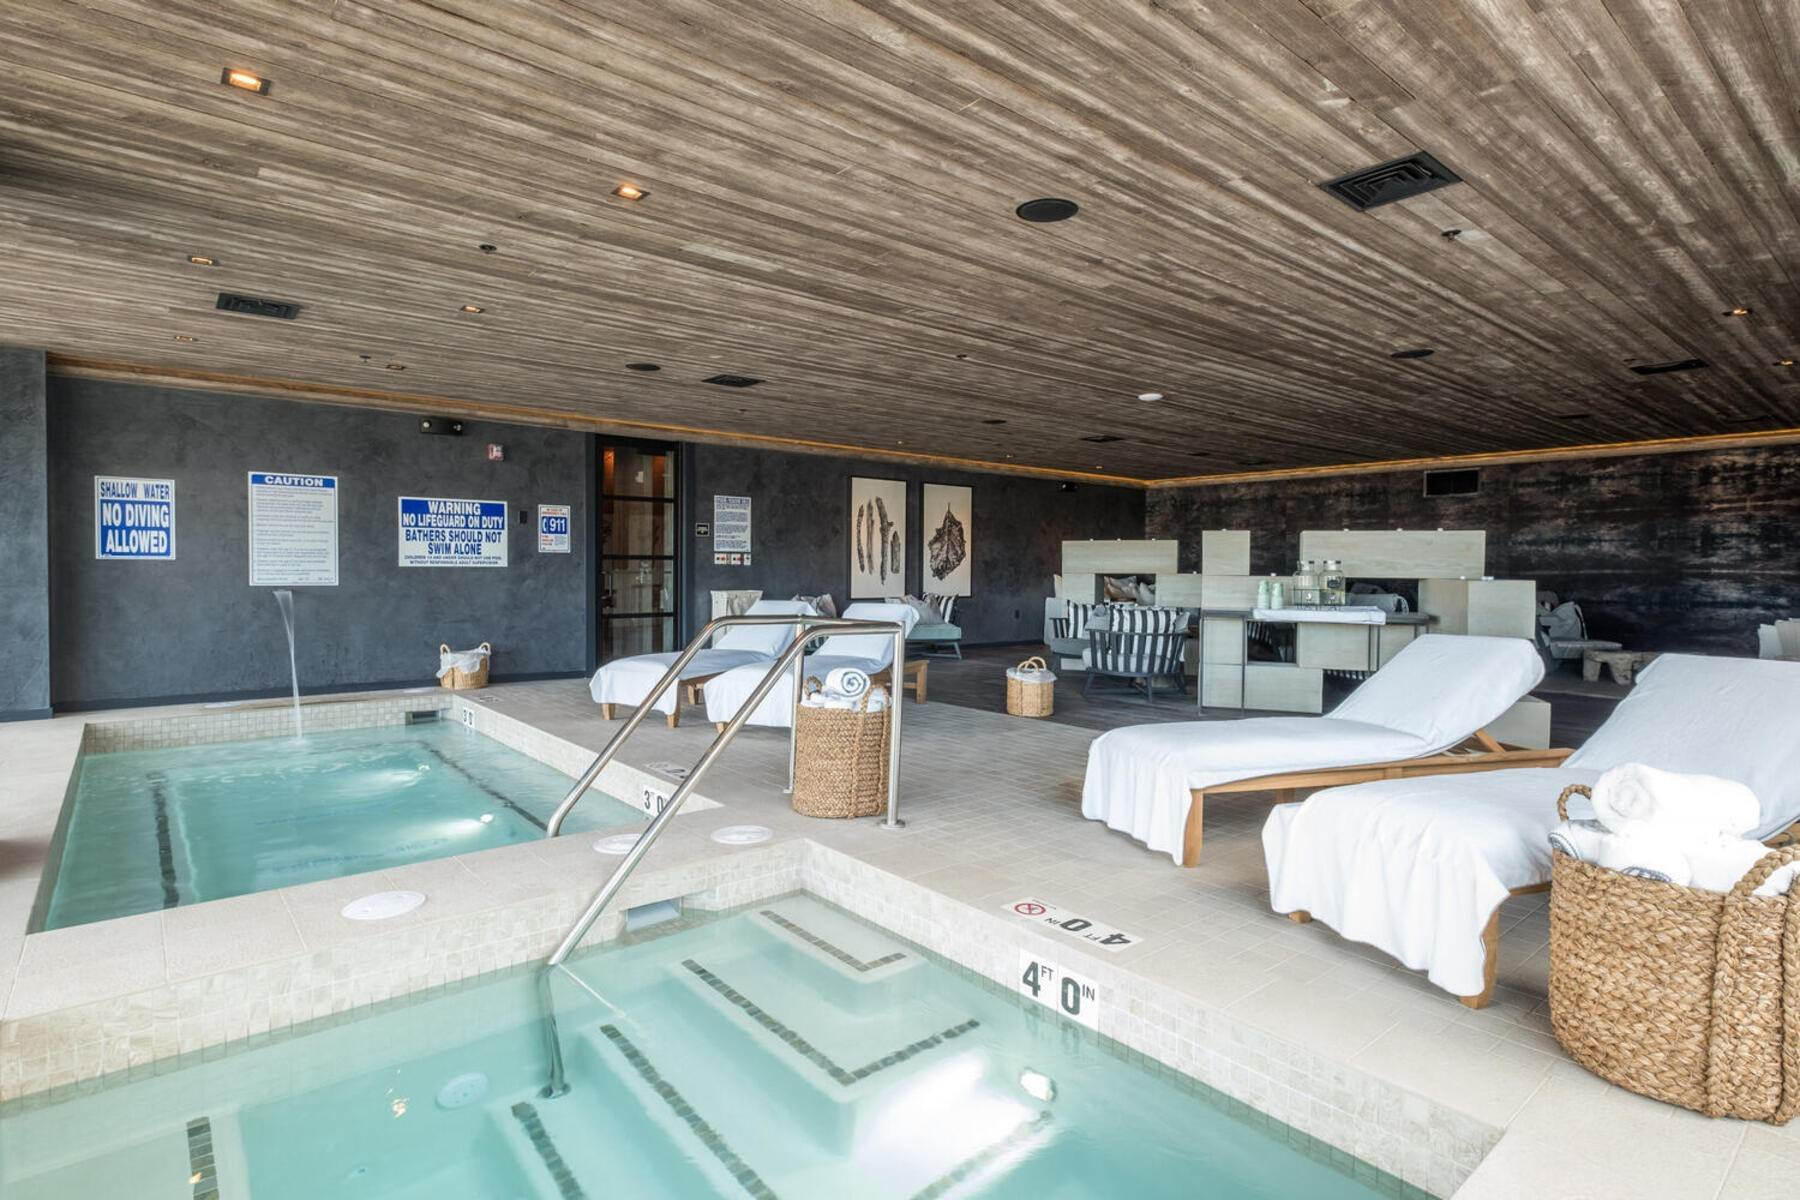 20. fractional ownership prop for Sale at 1/8 Fractional Ownership Opportunity In Brand New Kingfisher Cabin 7615 E Stardust Court #319E, 5.13 Heber City, Utah 84032 United States